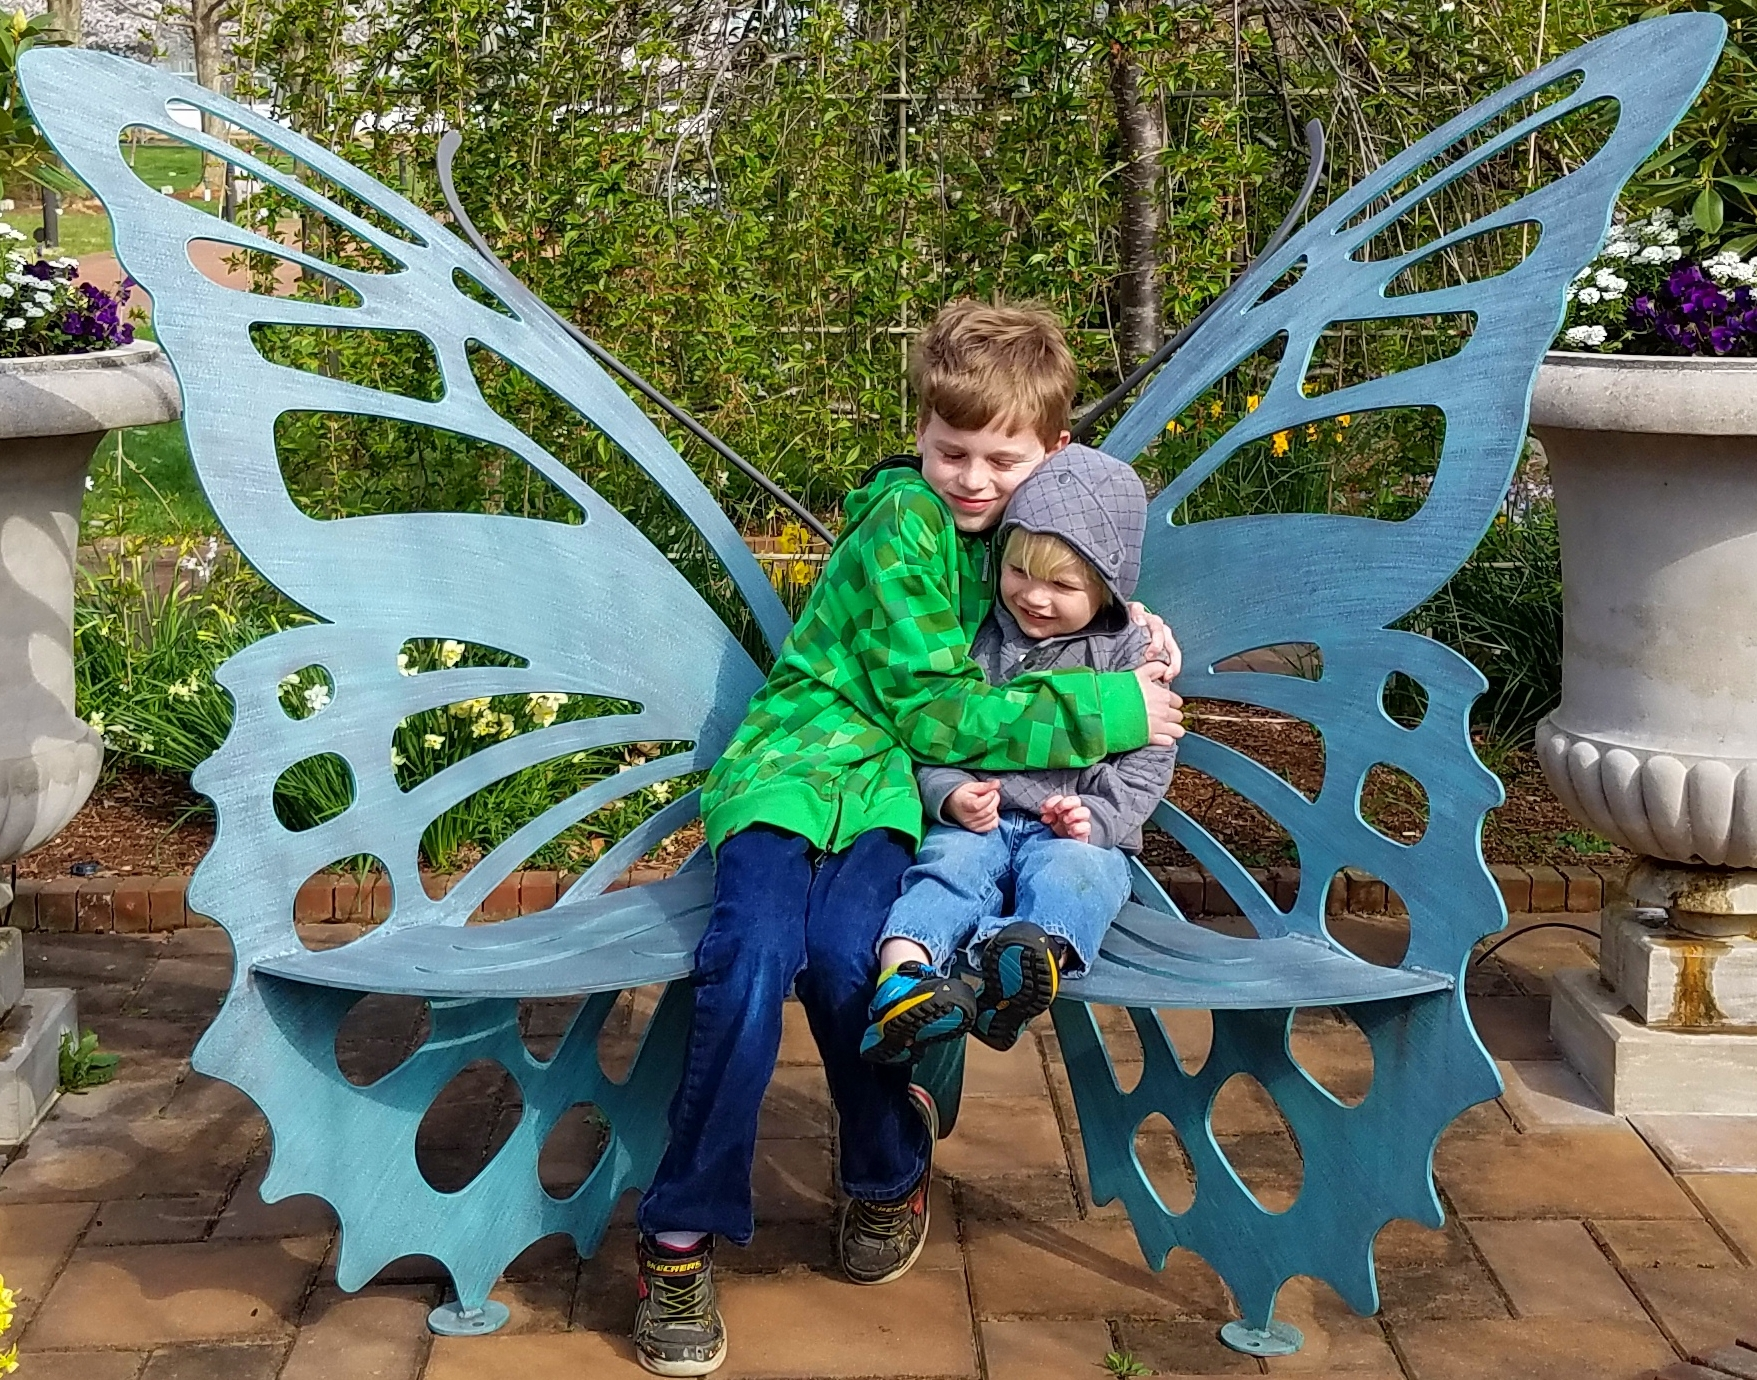 Jennifer's sons hugging on a butterfly bench and enjoying the therapeutic benefits of the Garden.